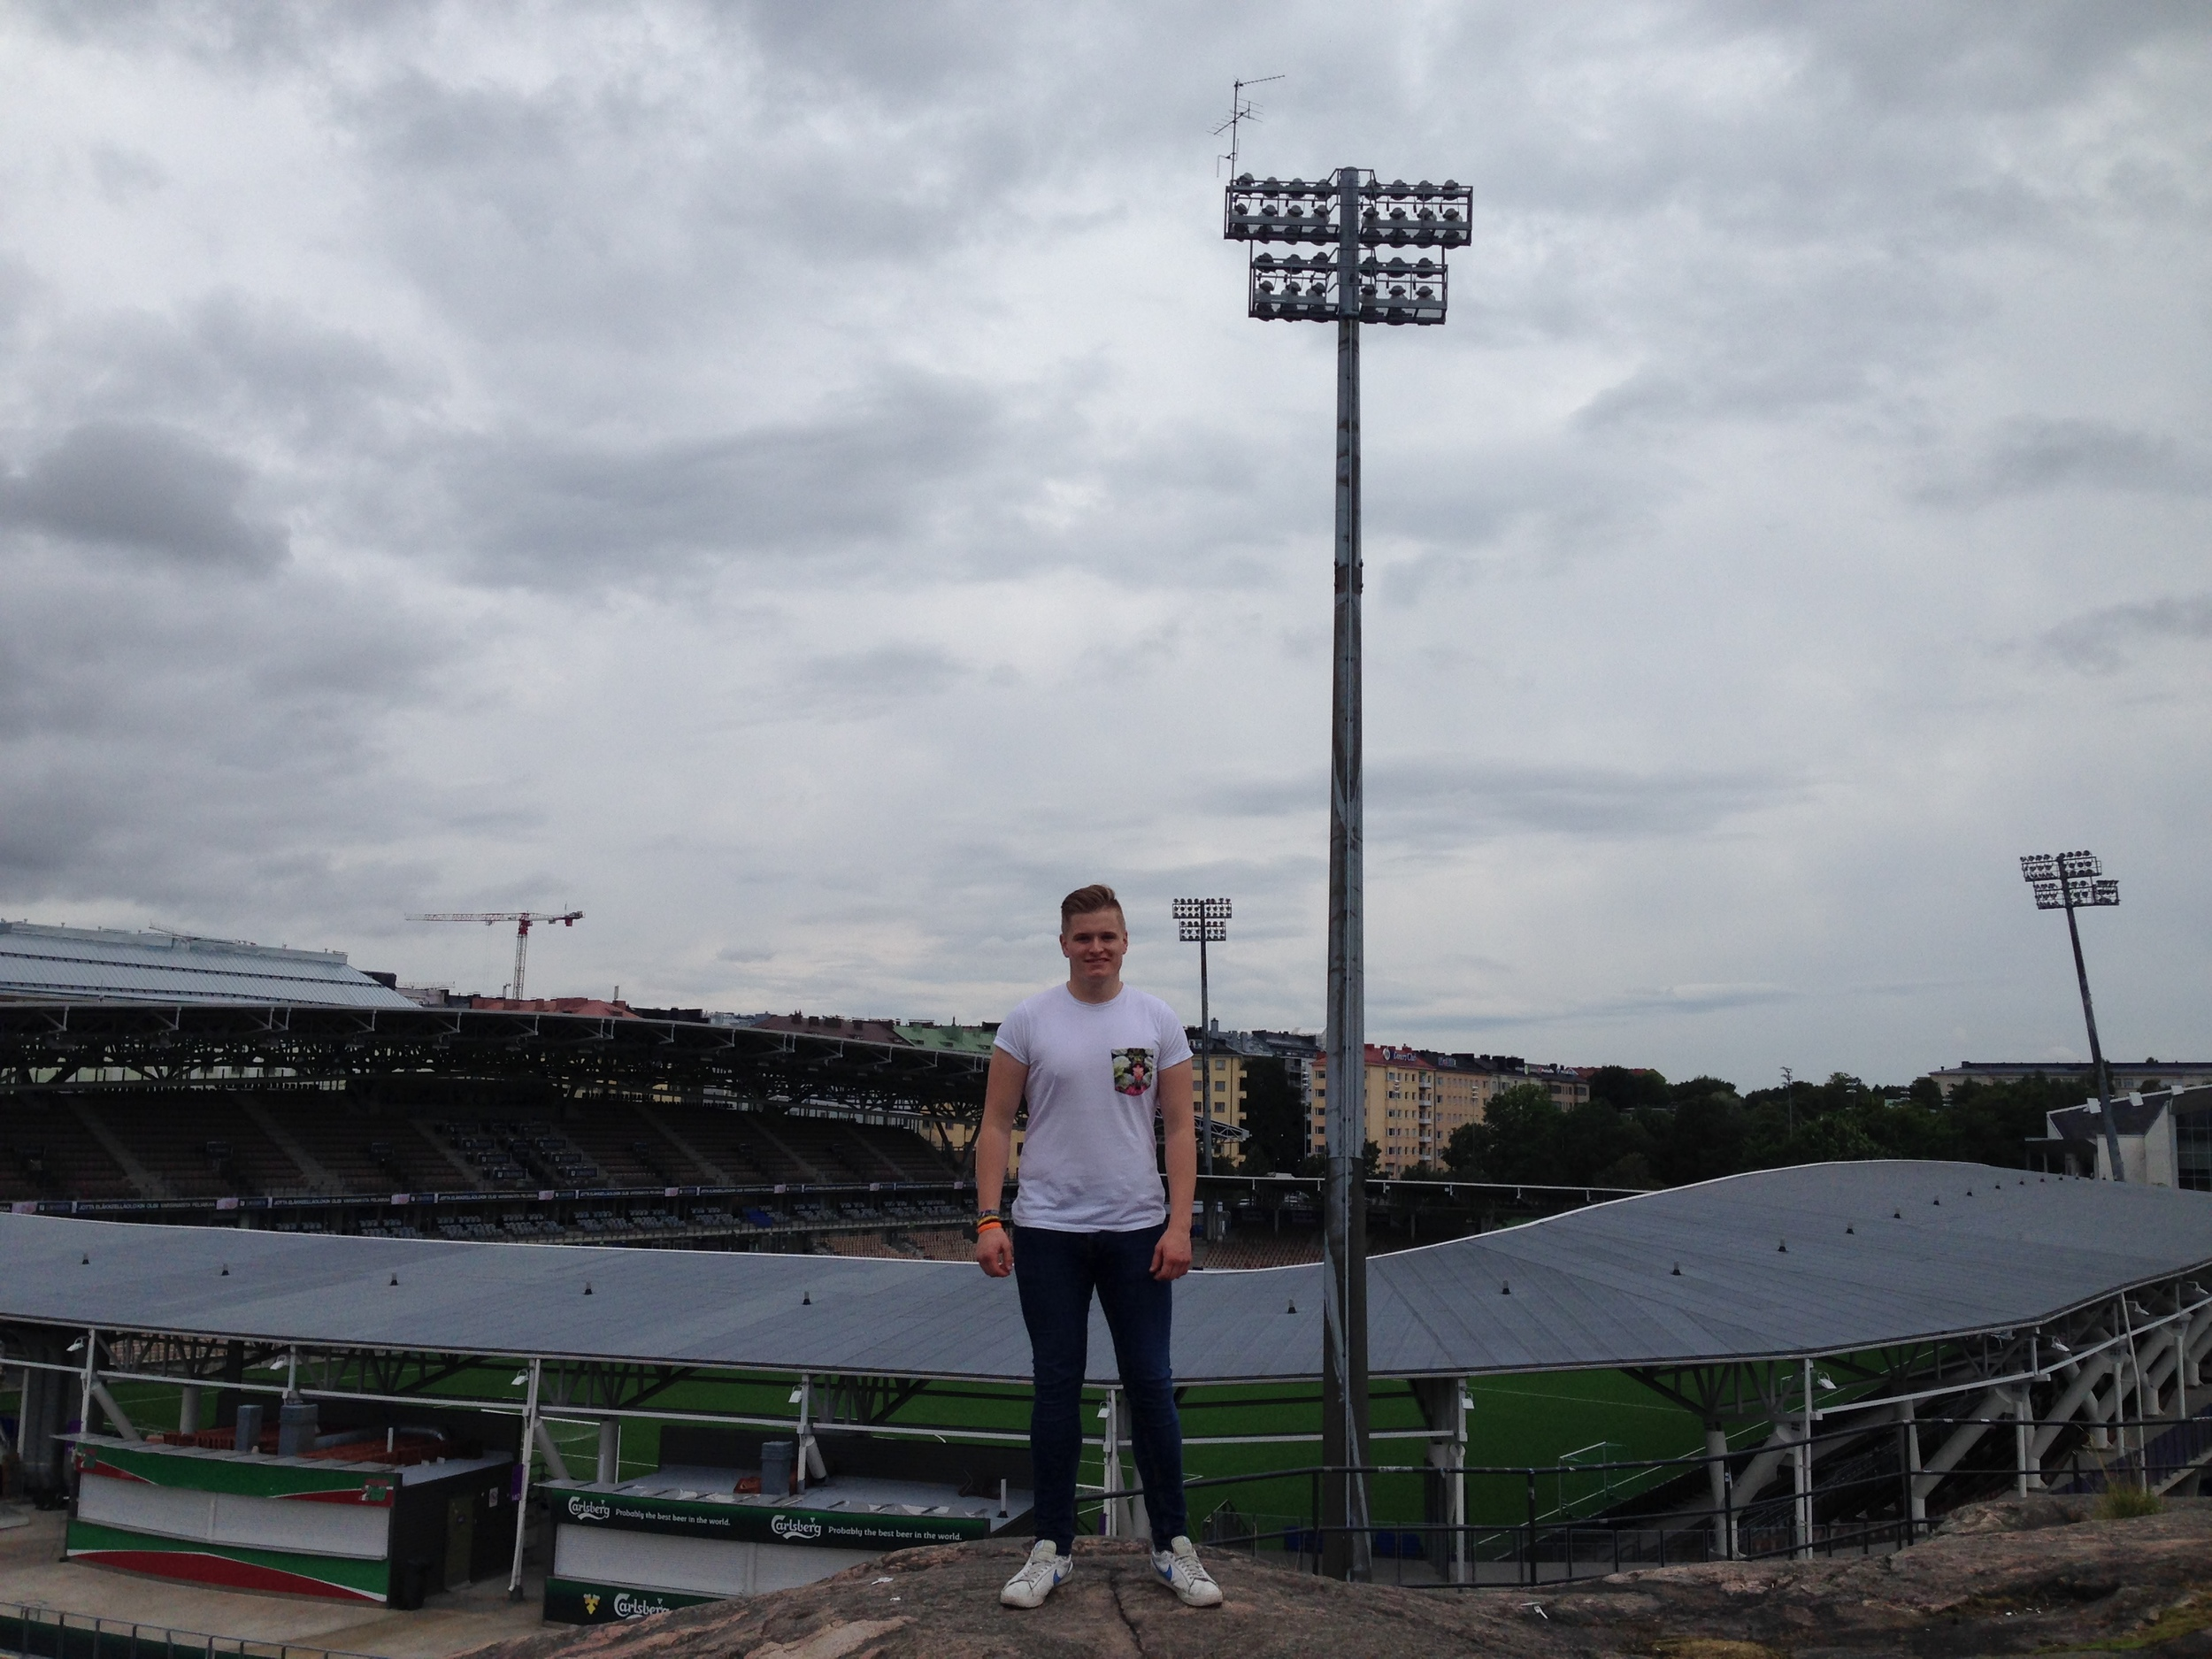 Me outside Sonera Stadium, home of HJK Helsinki.